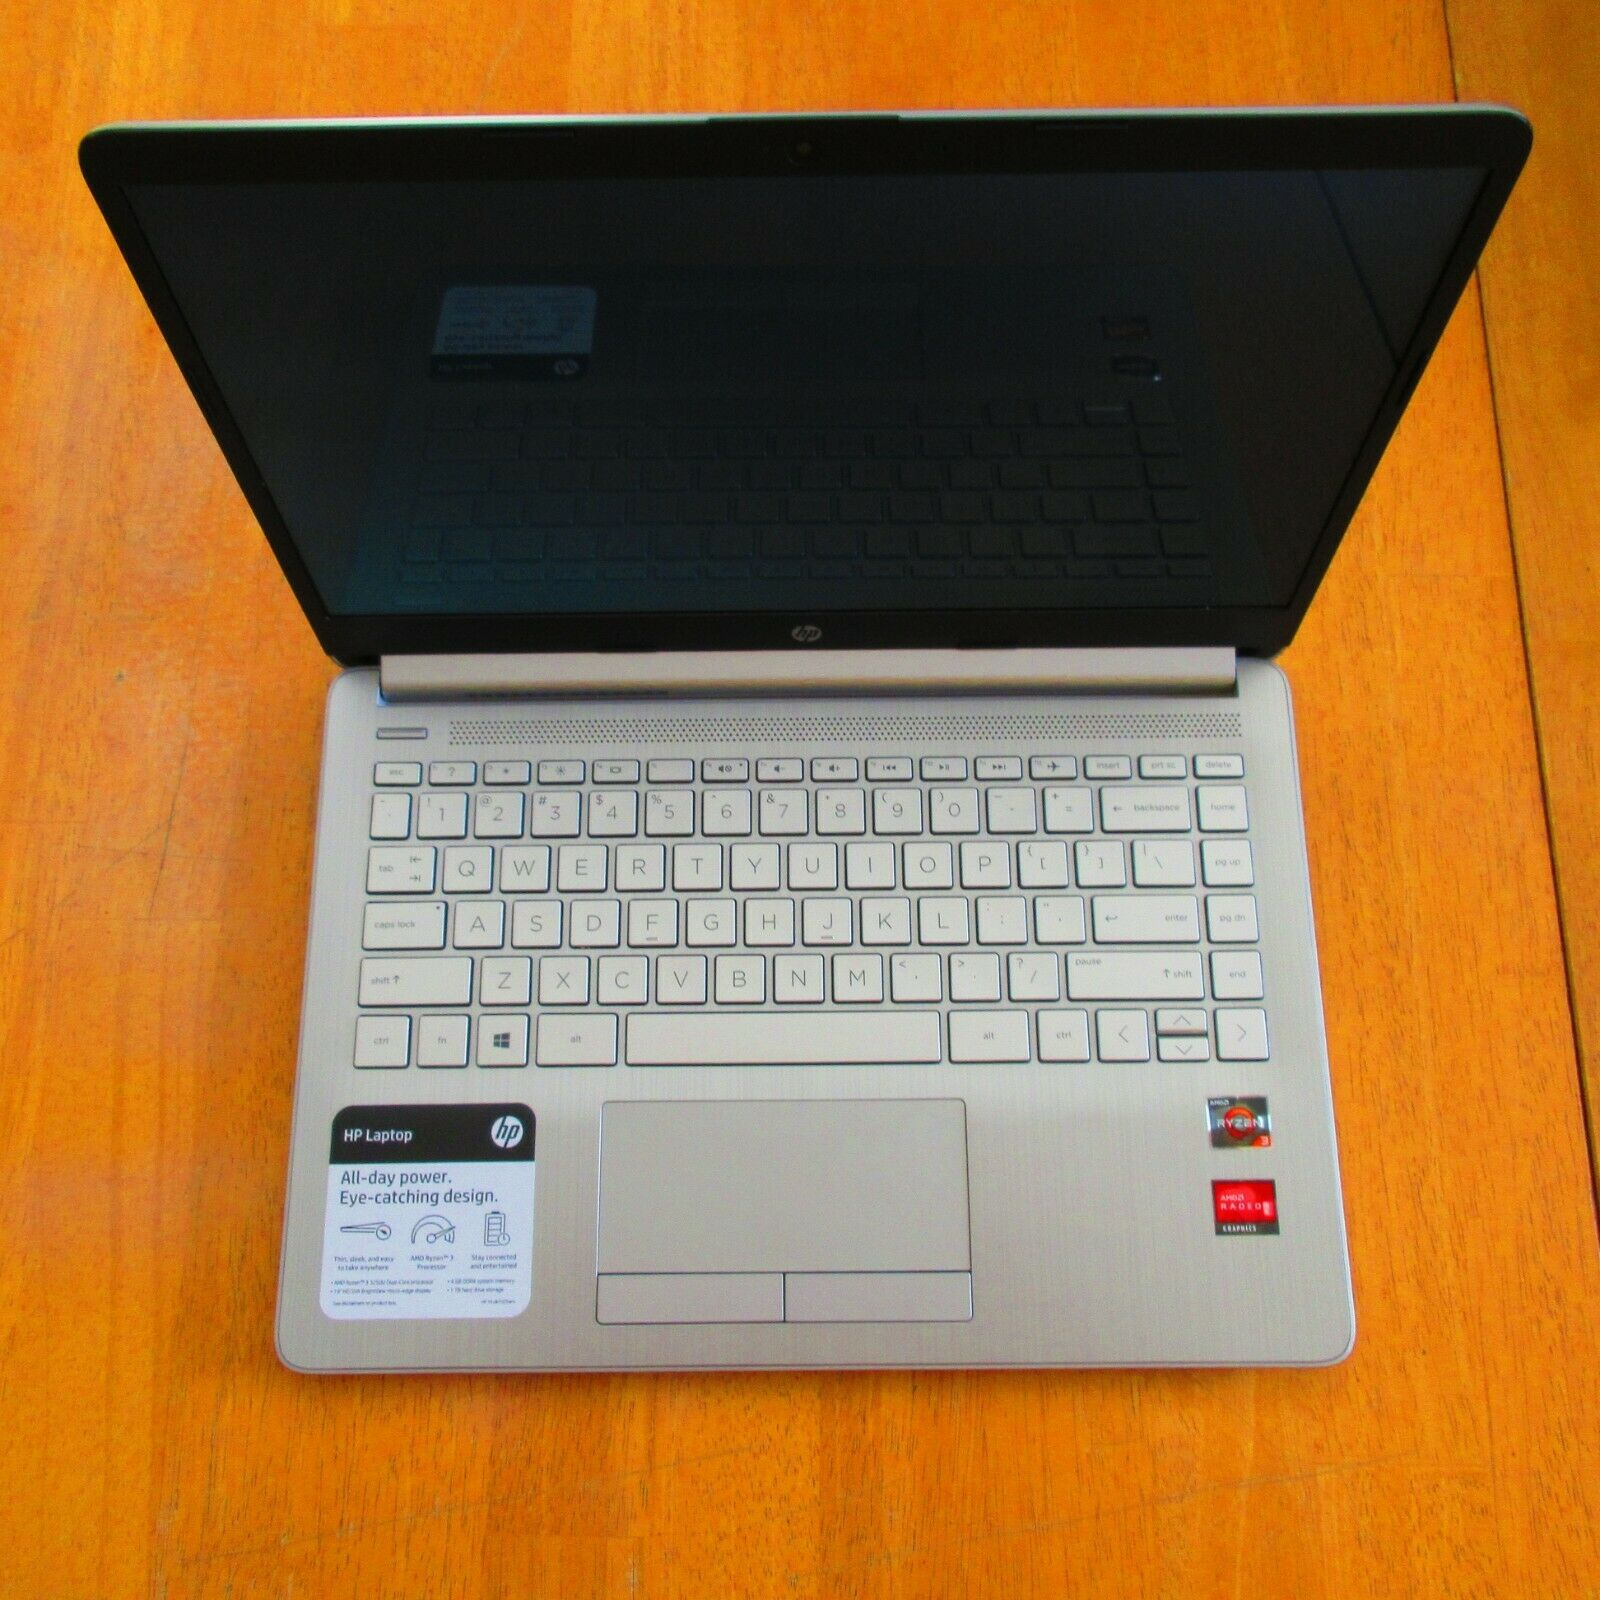 Asus X4001u Amd E1 1200 1 40 Ghz Apu With Radeon Hd Graphics 4gb 320gb For Sale Online Ebay